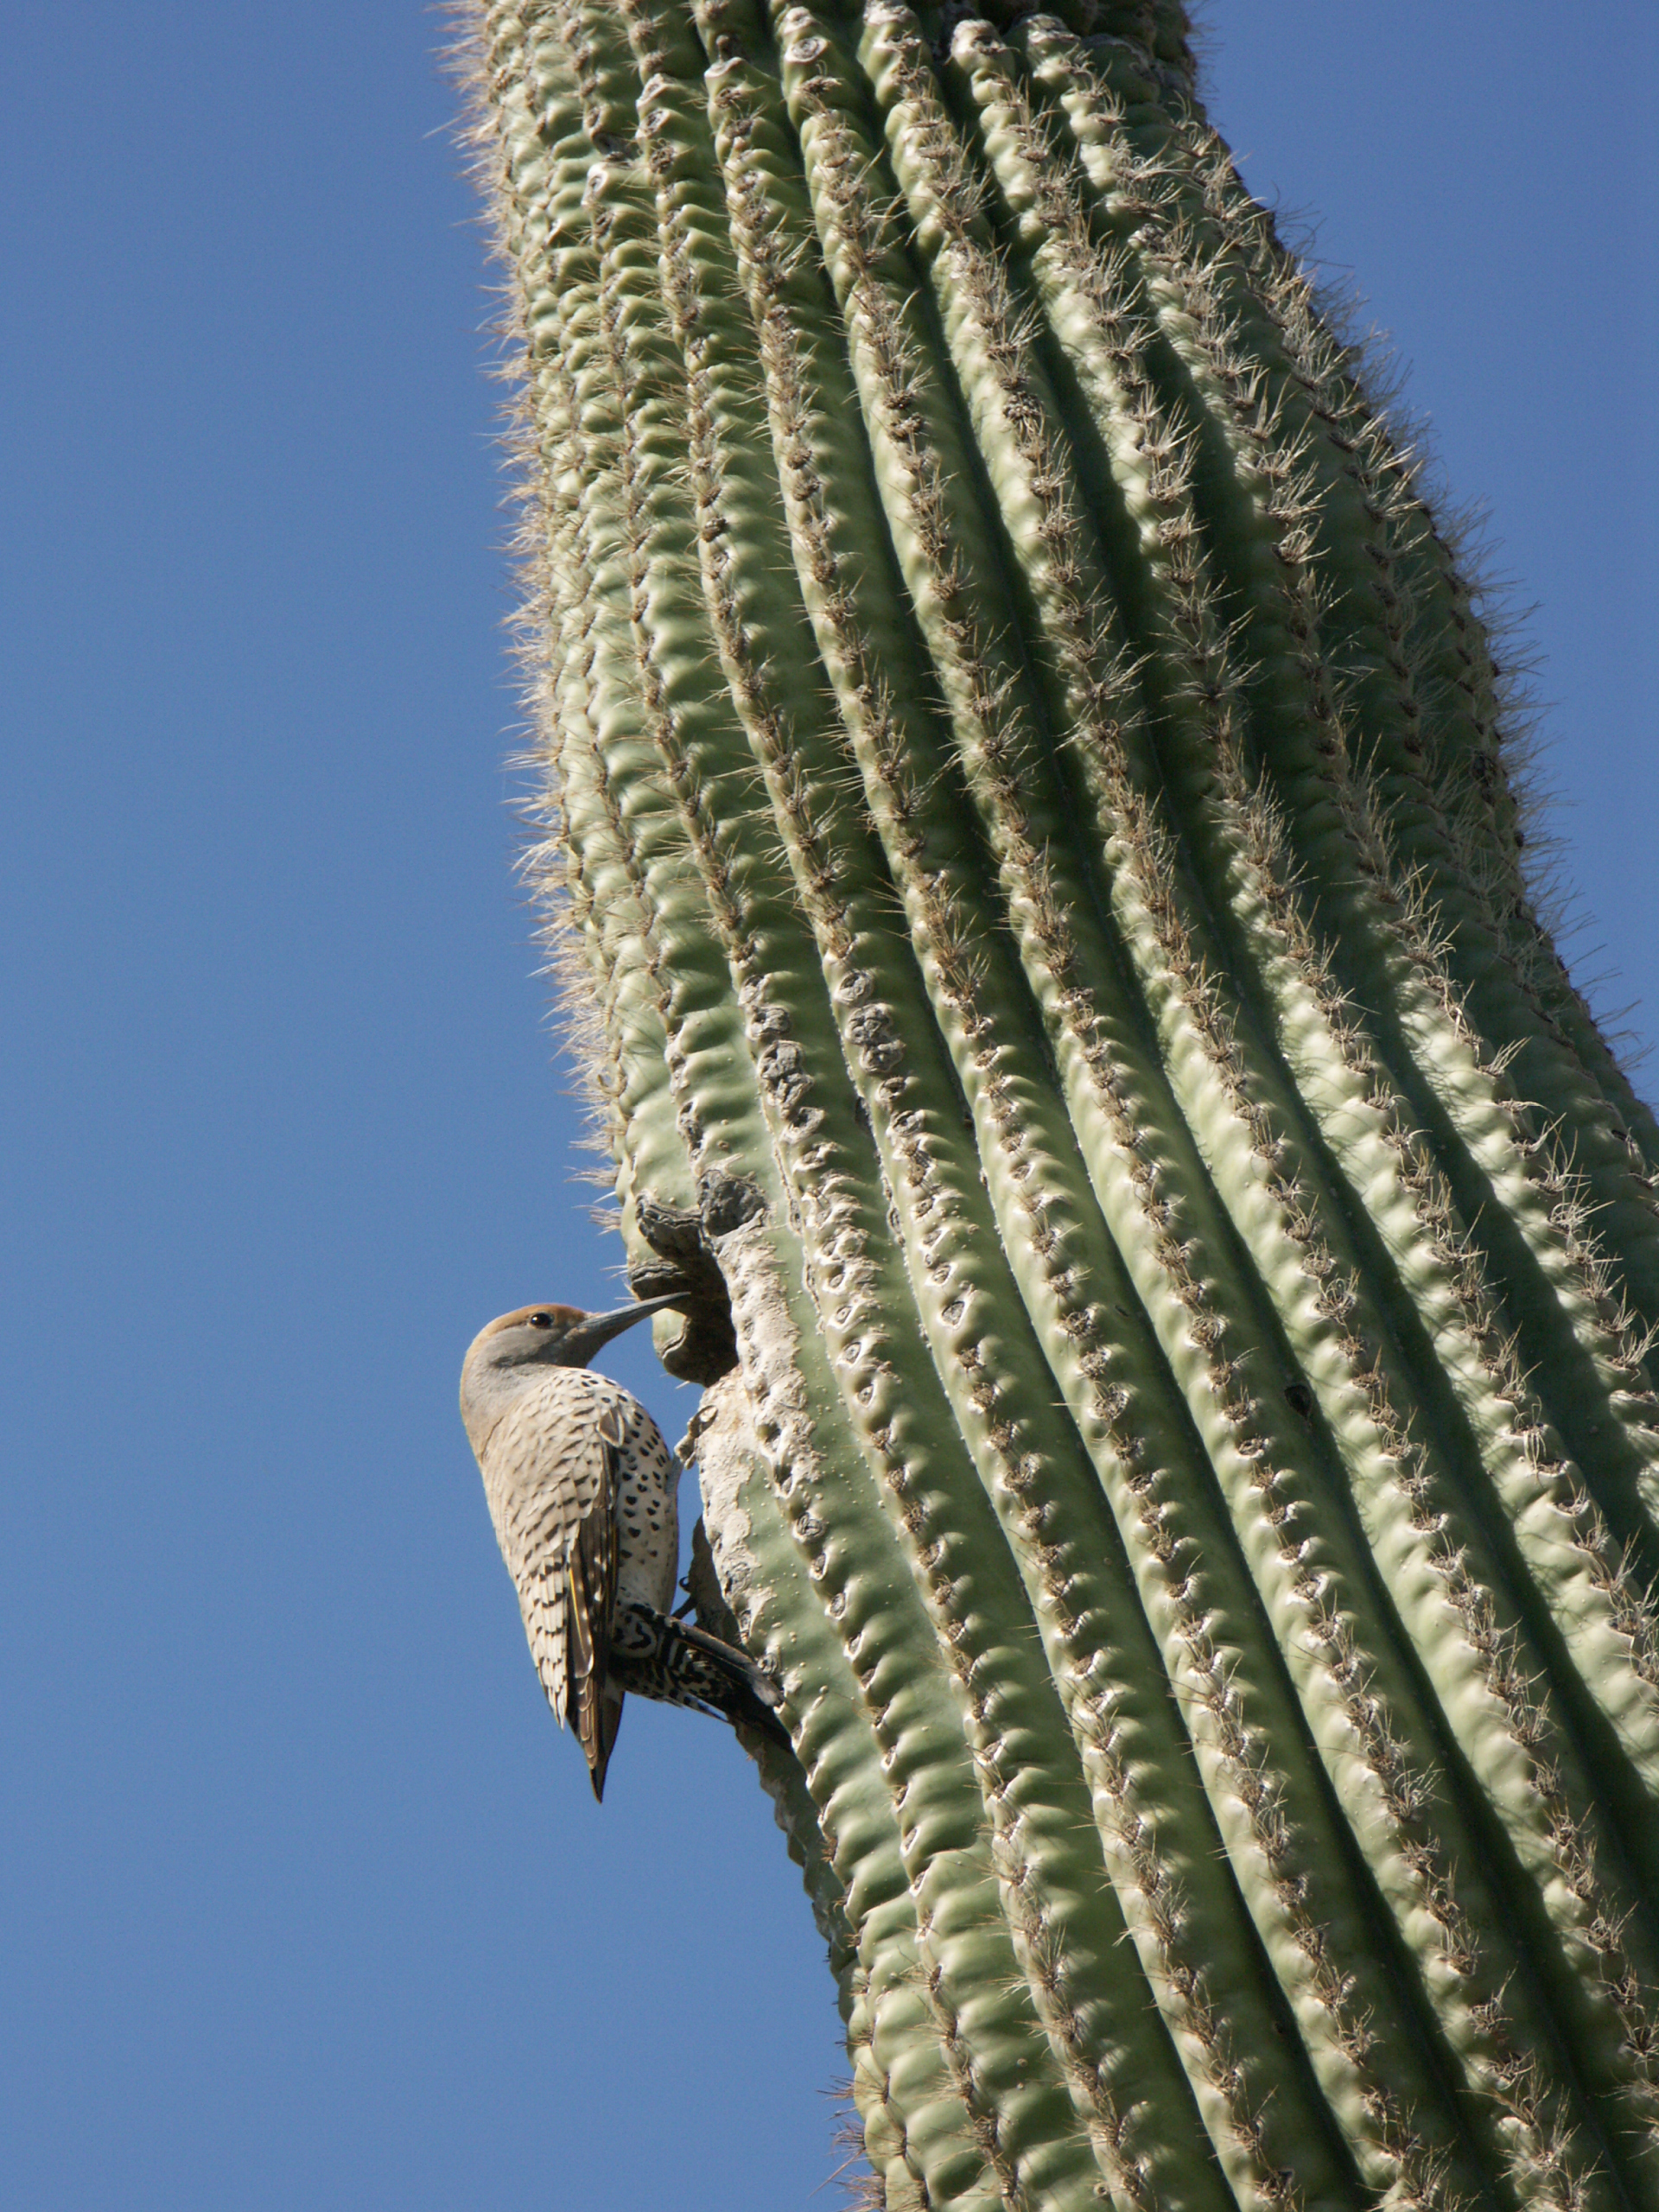 Northern flicker on side of saguaro cactus